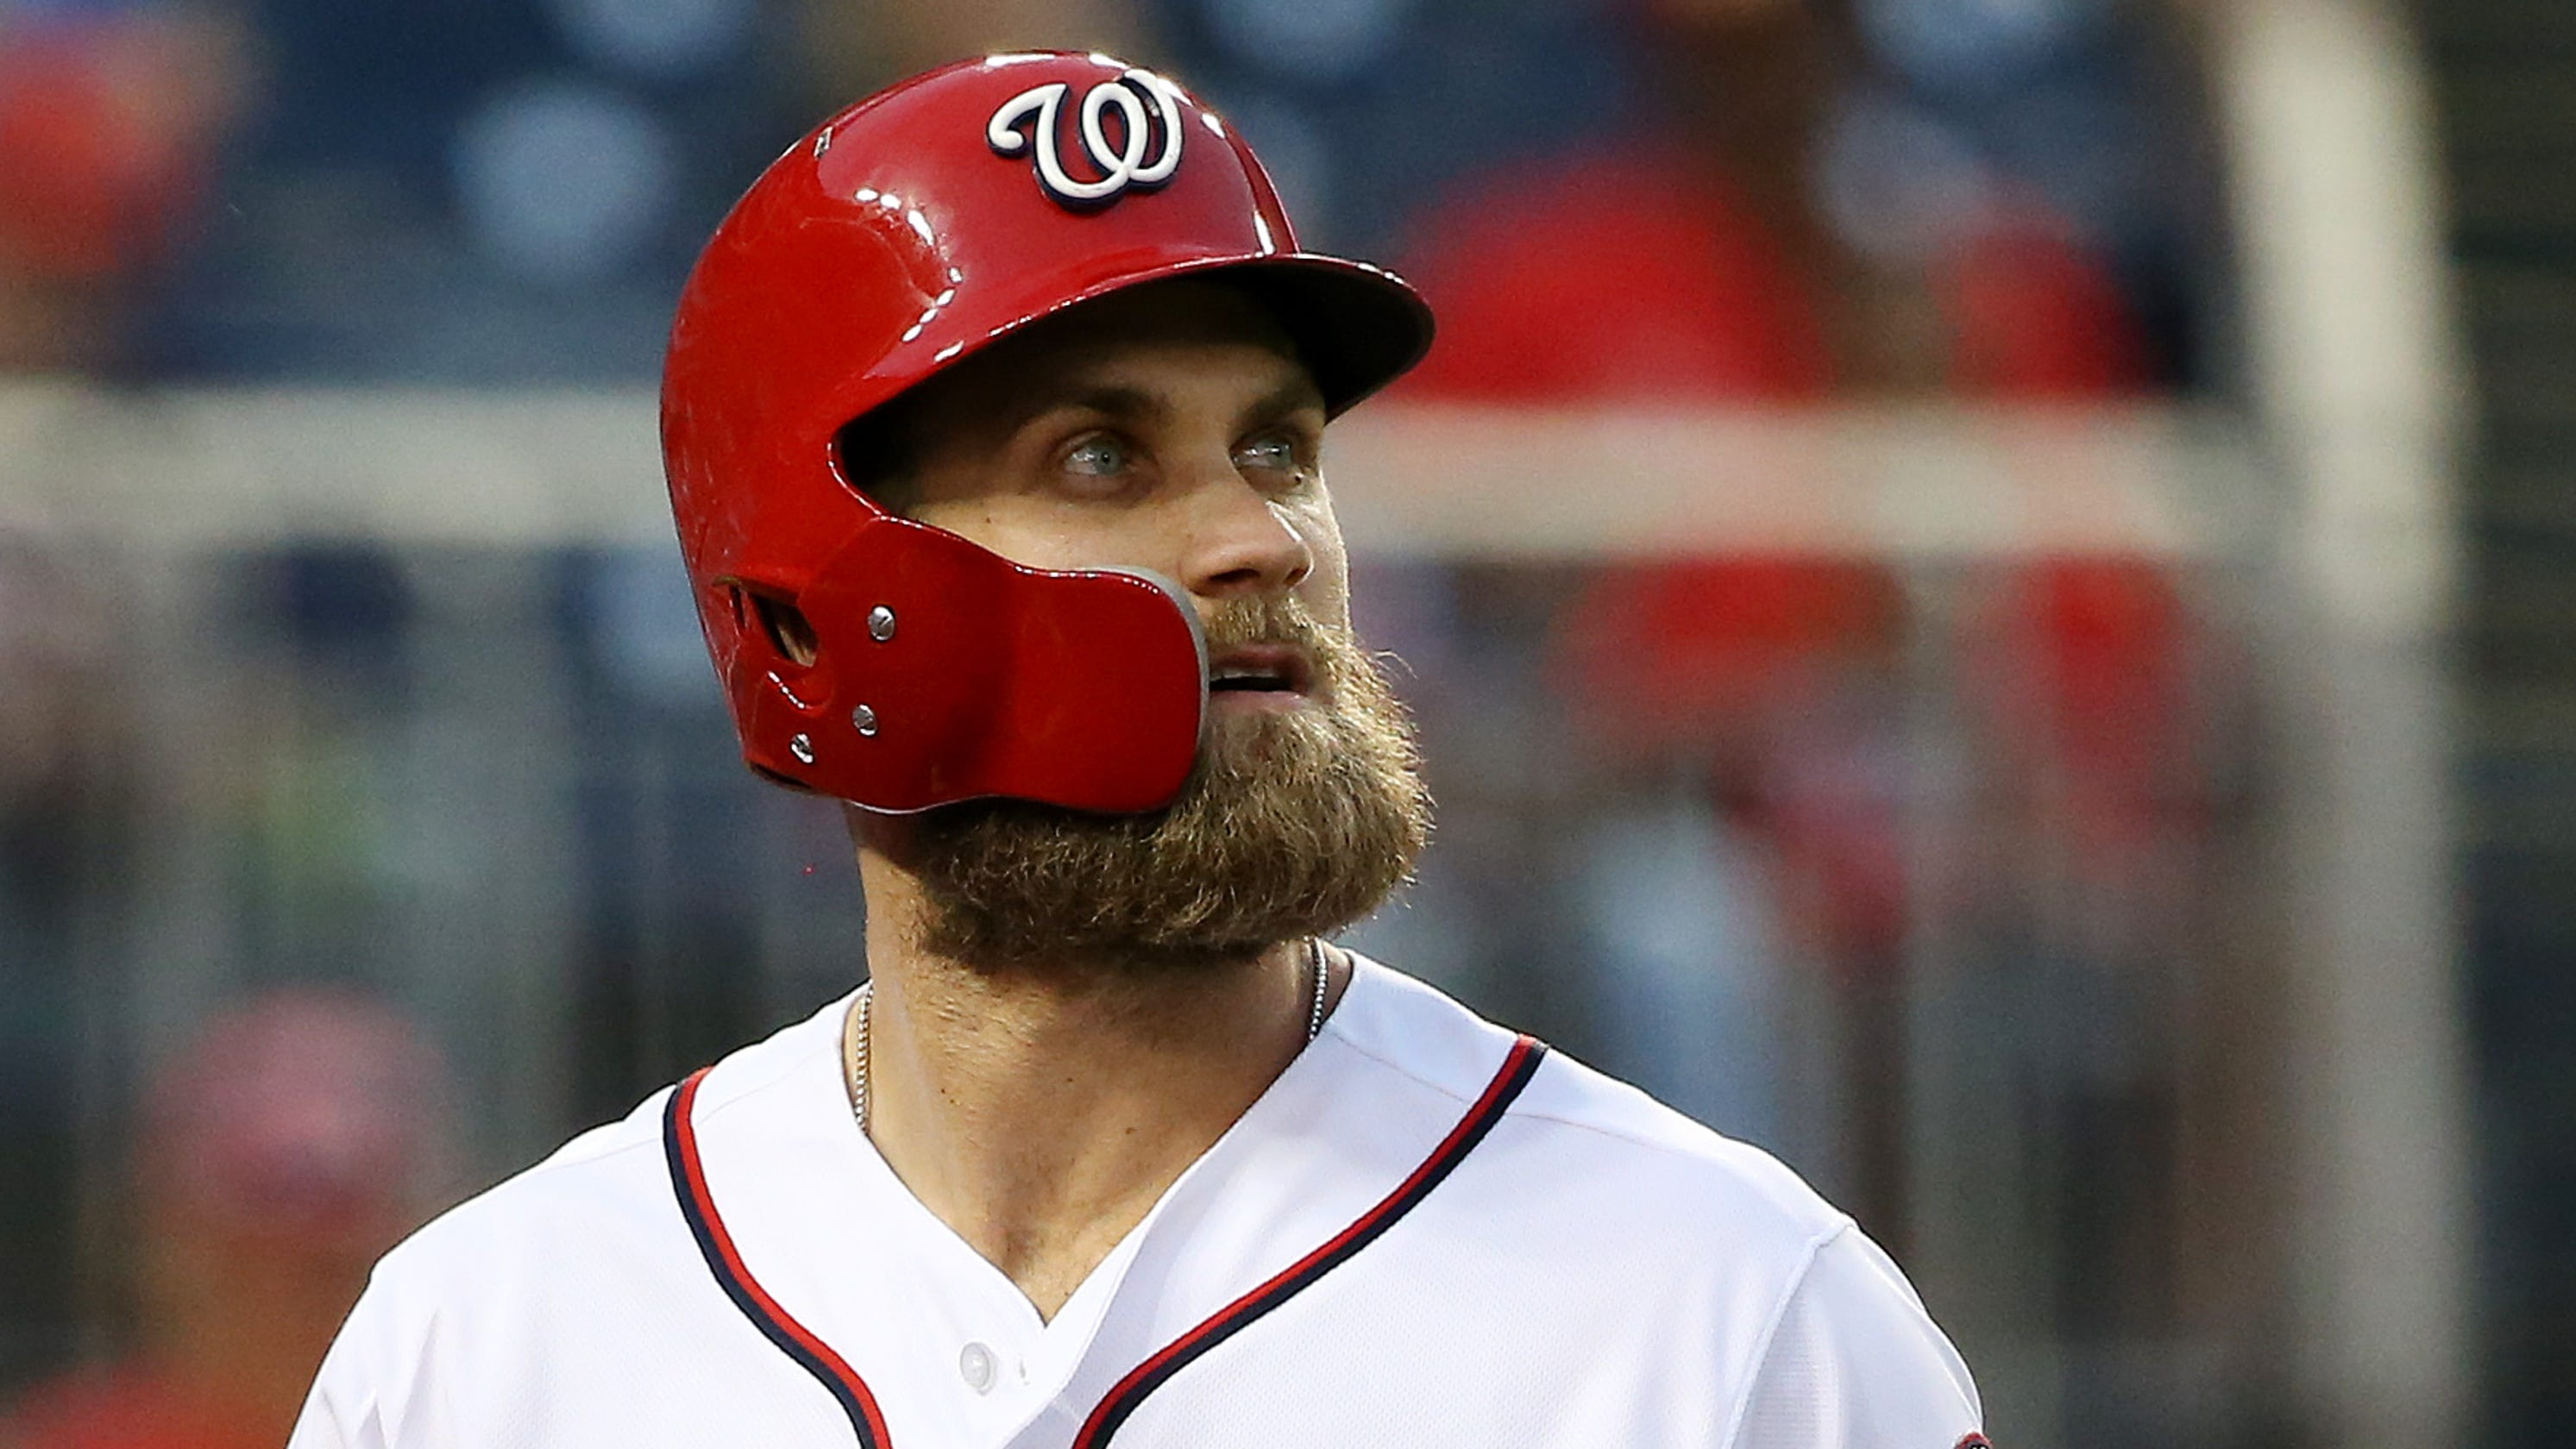 73e87ec2be1 Bryce Harper  Outfielder will sign with Phillies. Bank on it.